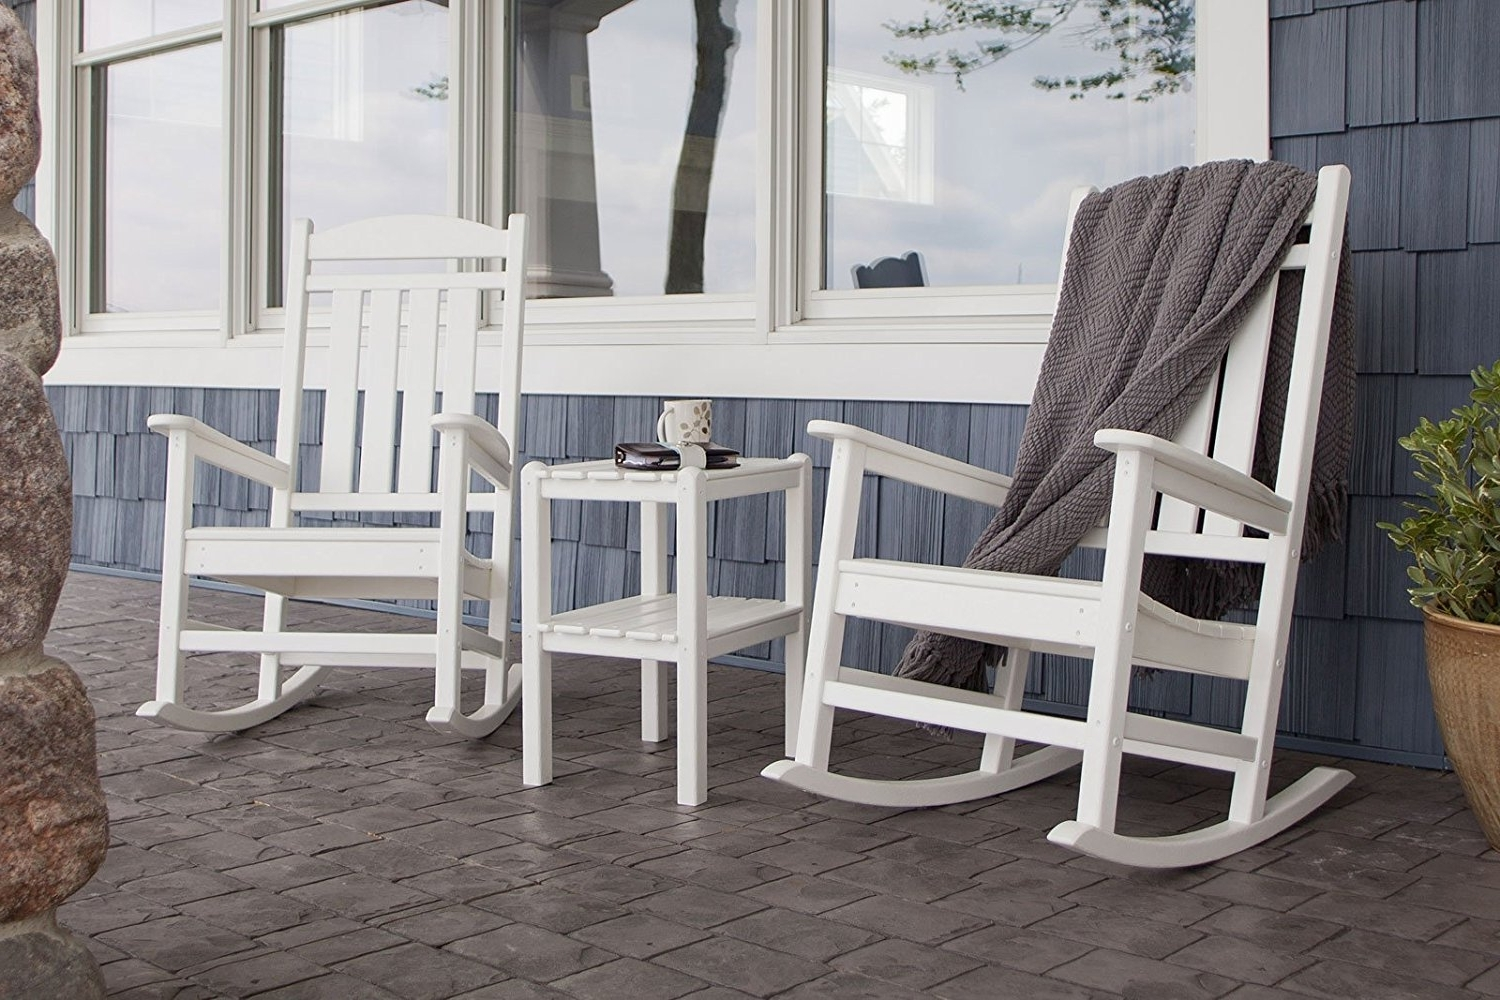 Outdoor Rocking Chairs With Table Pertaining To 2019 Livingroom : Astonishing Com Polywood Pws138 Wh Presidential Piece (View 8 of 20)